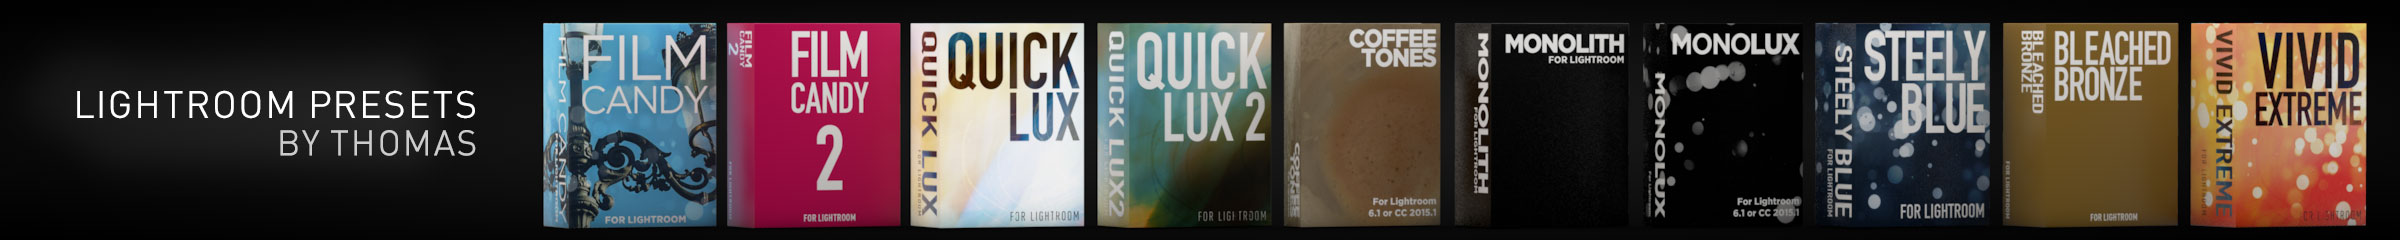 Lightroom Presets by Thomas Fitzgerald